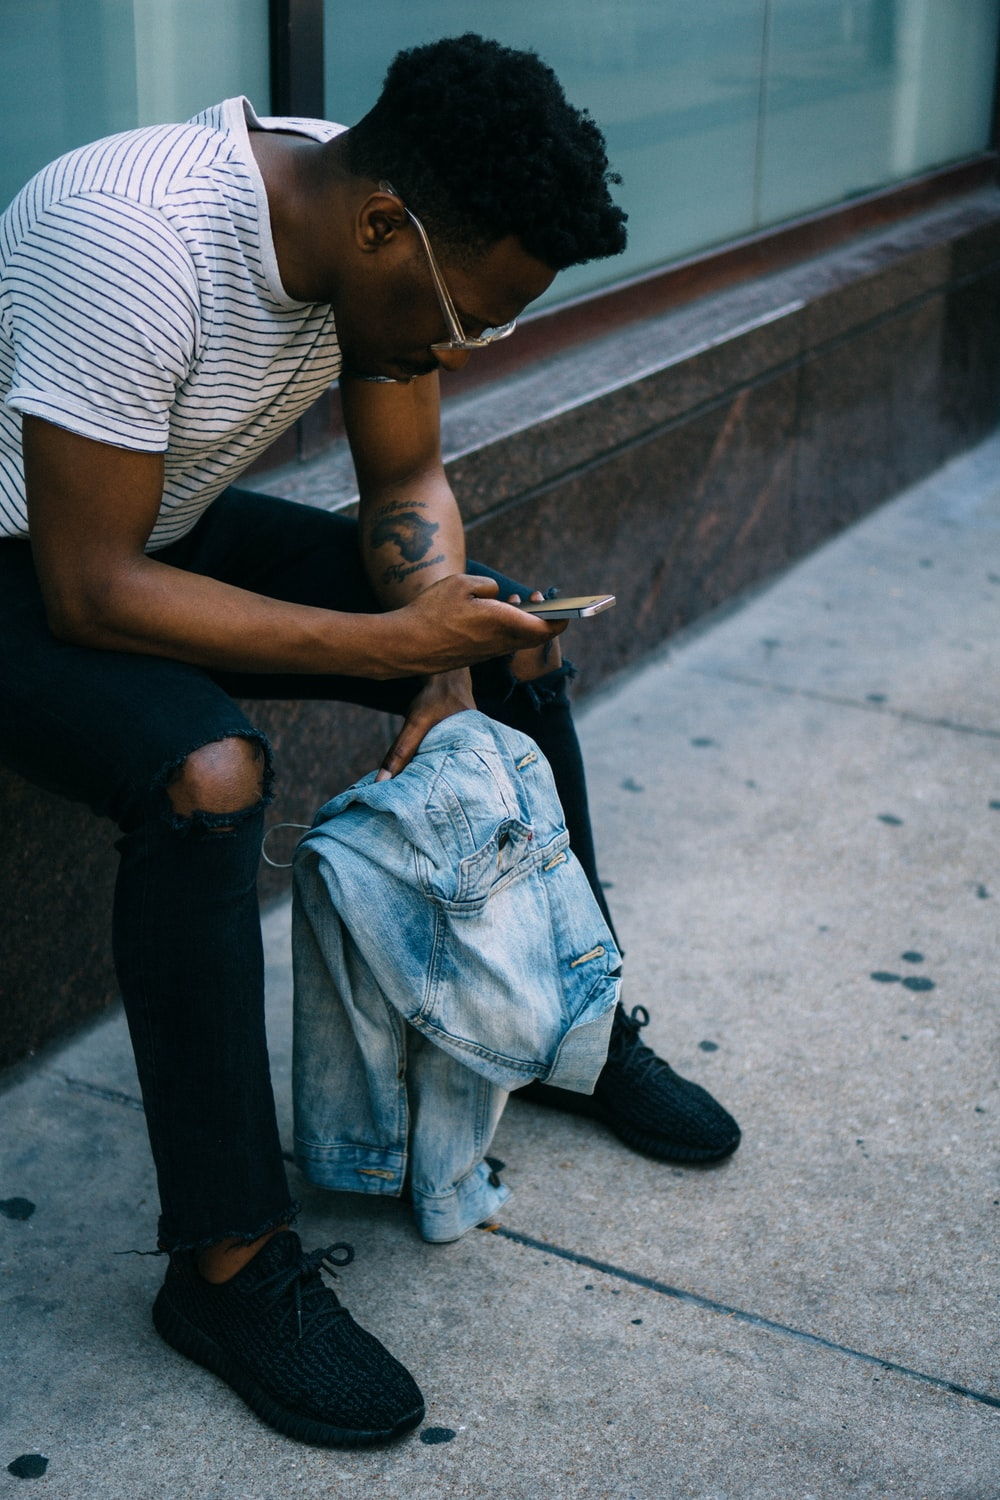 man sitting while using phone